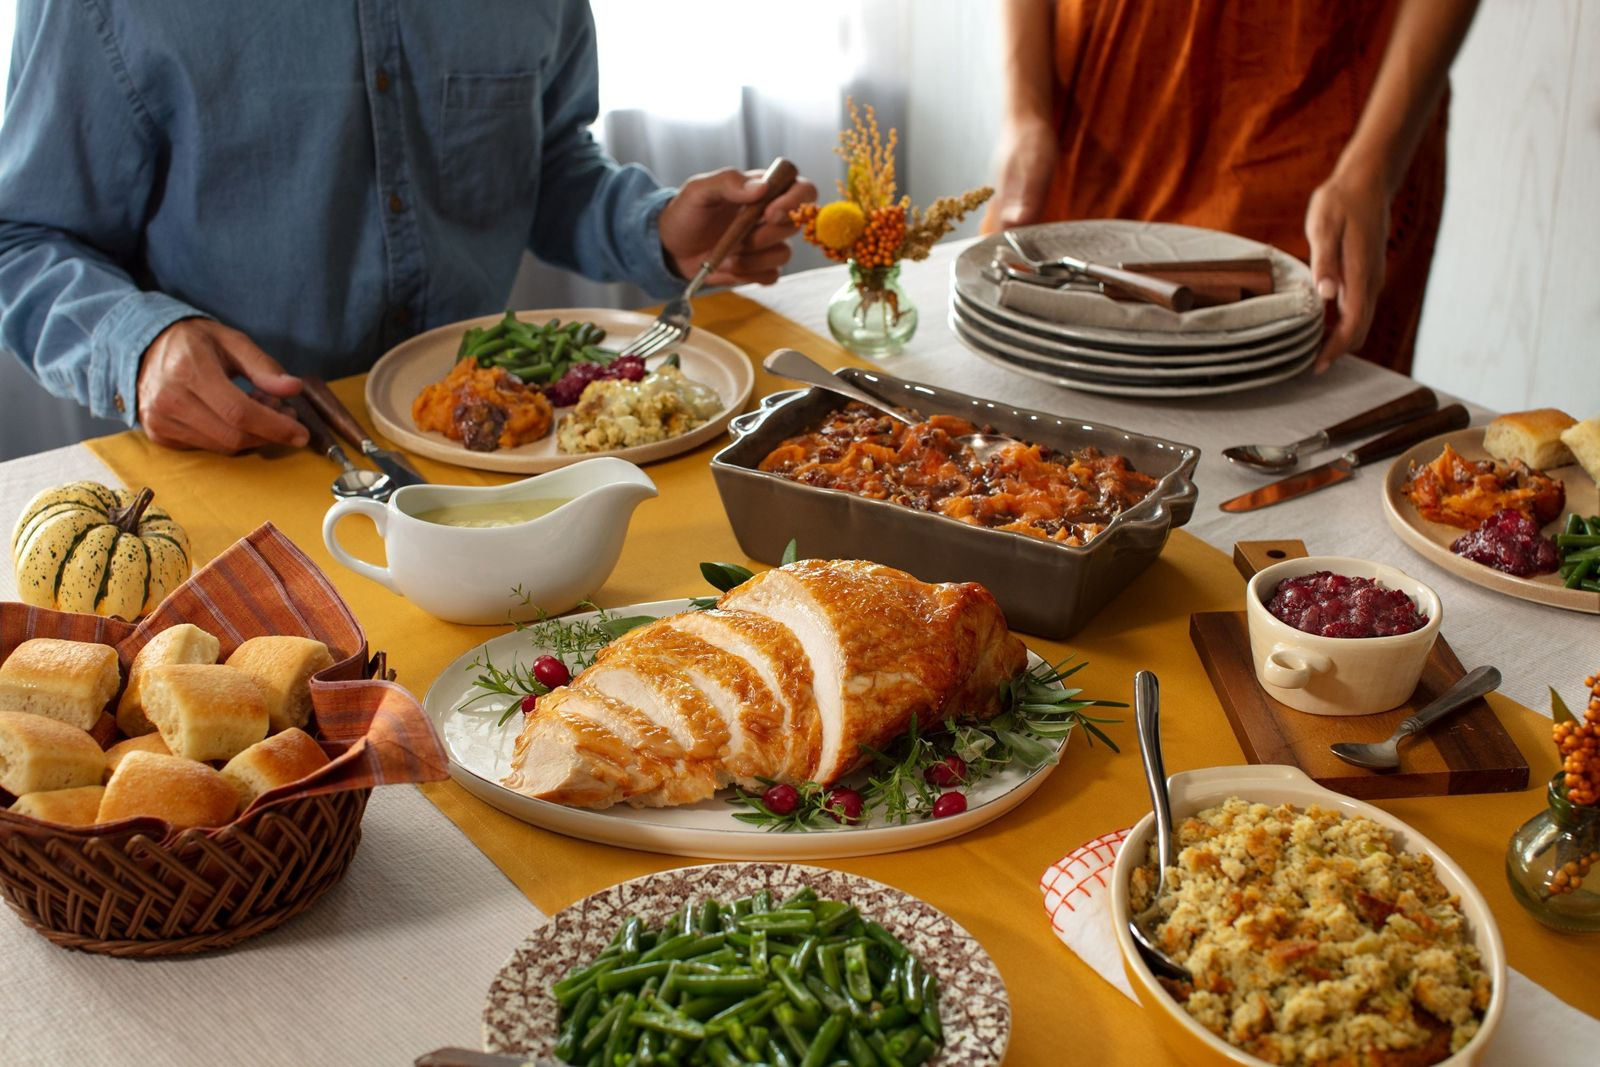 Cracker Barrel Old Country Store Offers New Options to Enjoy Thanksgiving Traditions Safely